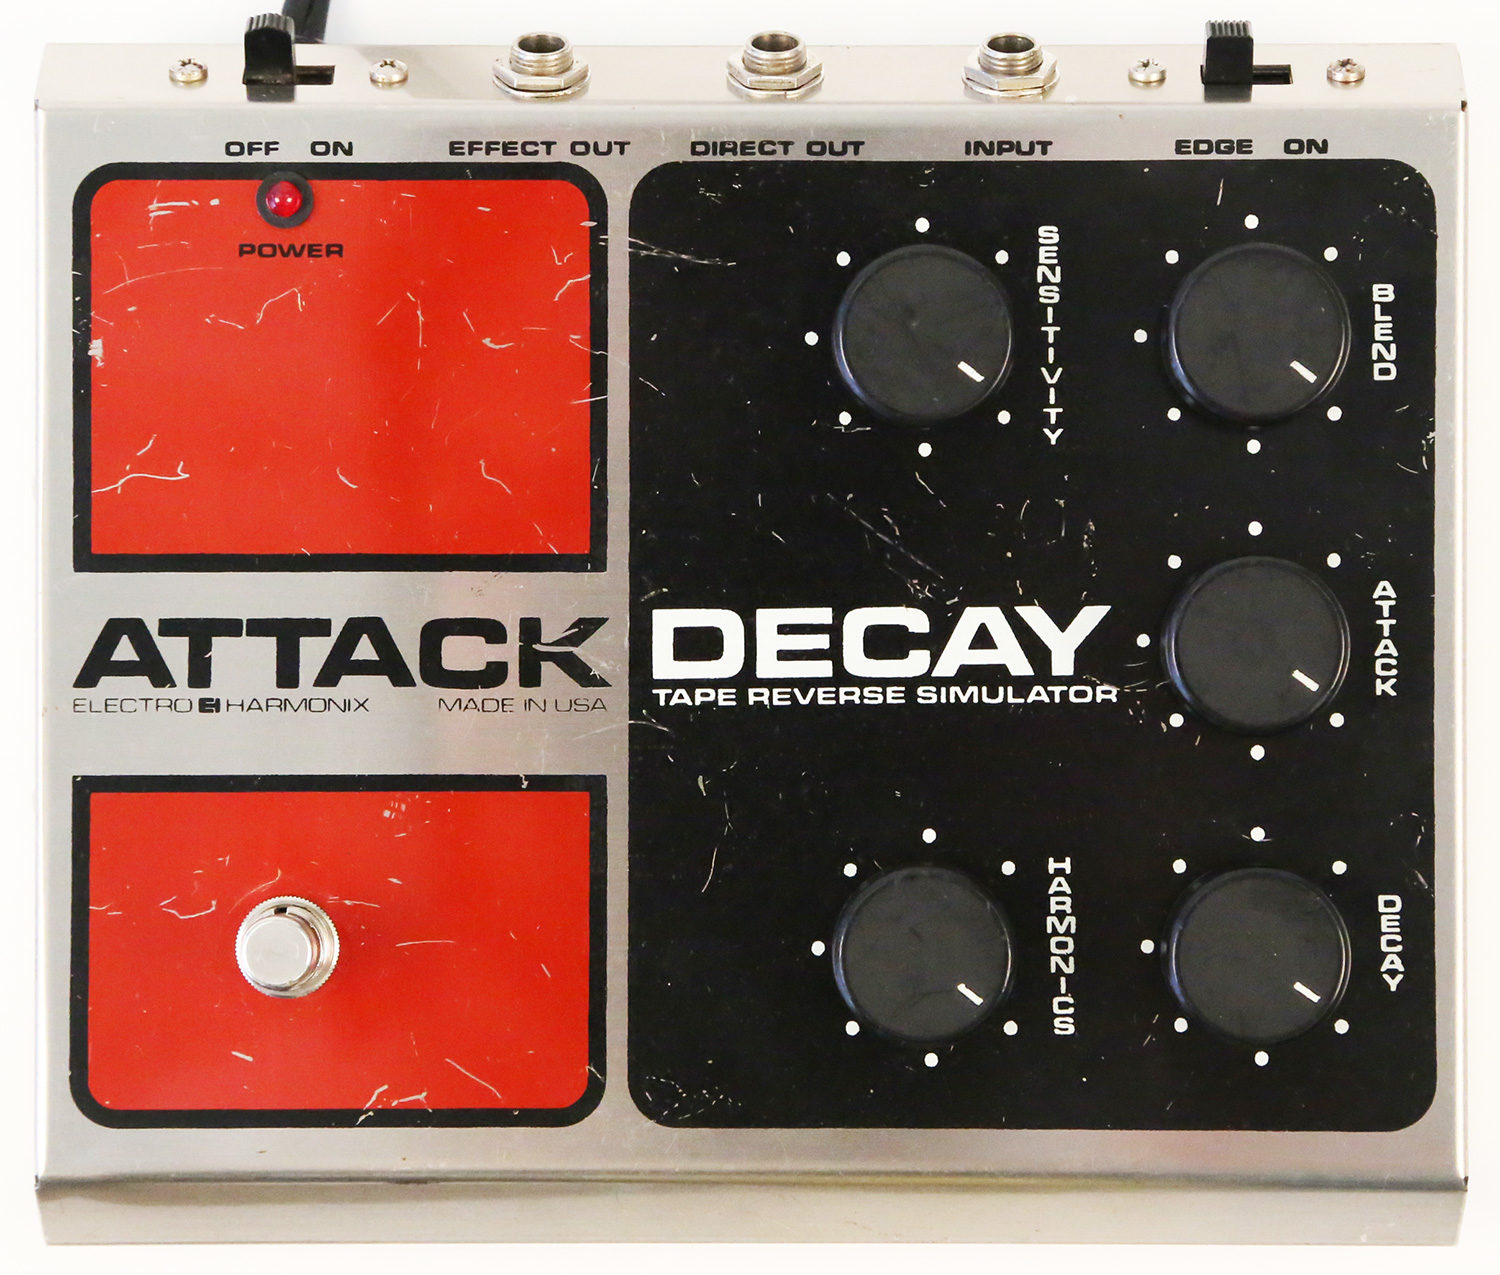 1980_EHX_Attack_Decay_001-1500x1275.